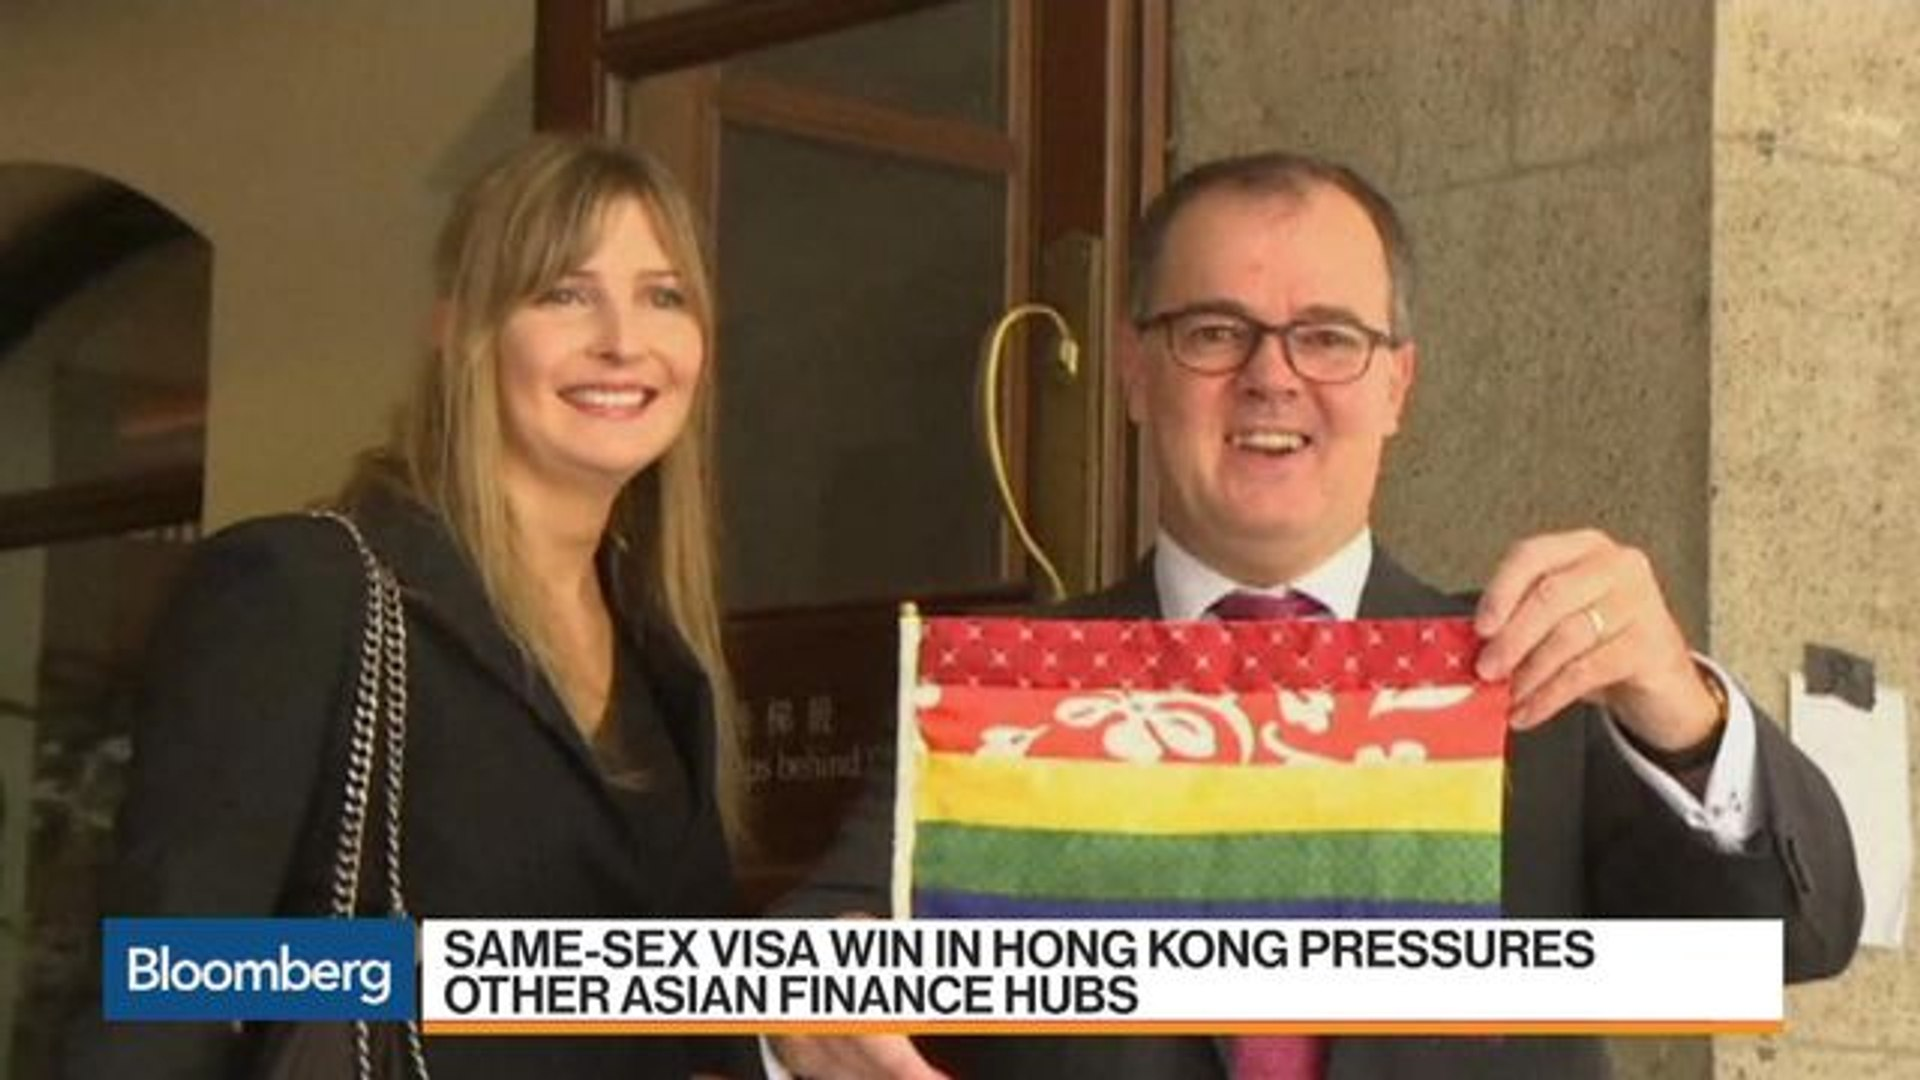 Same-Sex Visa Win in Hong Kong Pressures Other Asia Finance Hubs